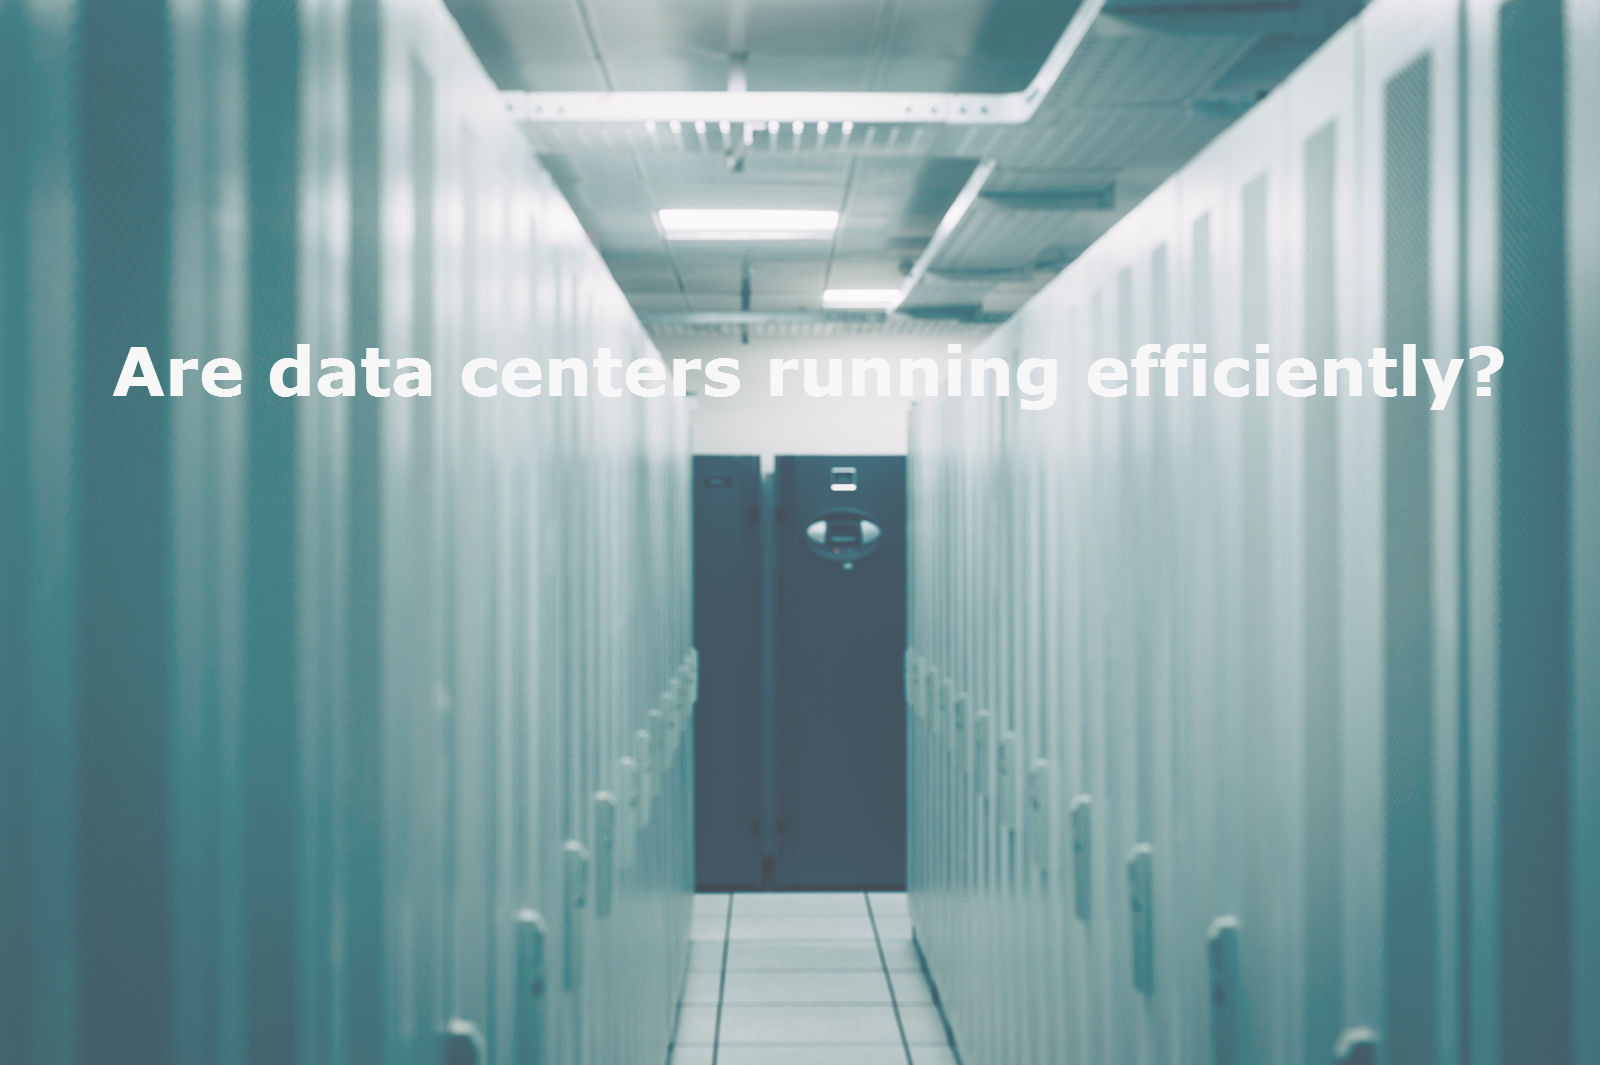 Are data centers running efficiently? - Image 1